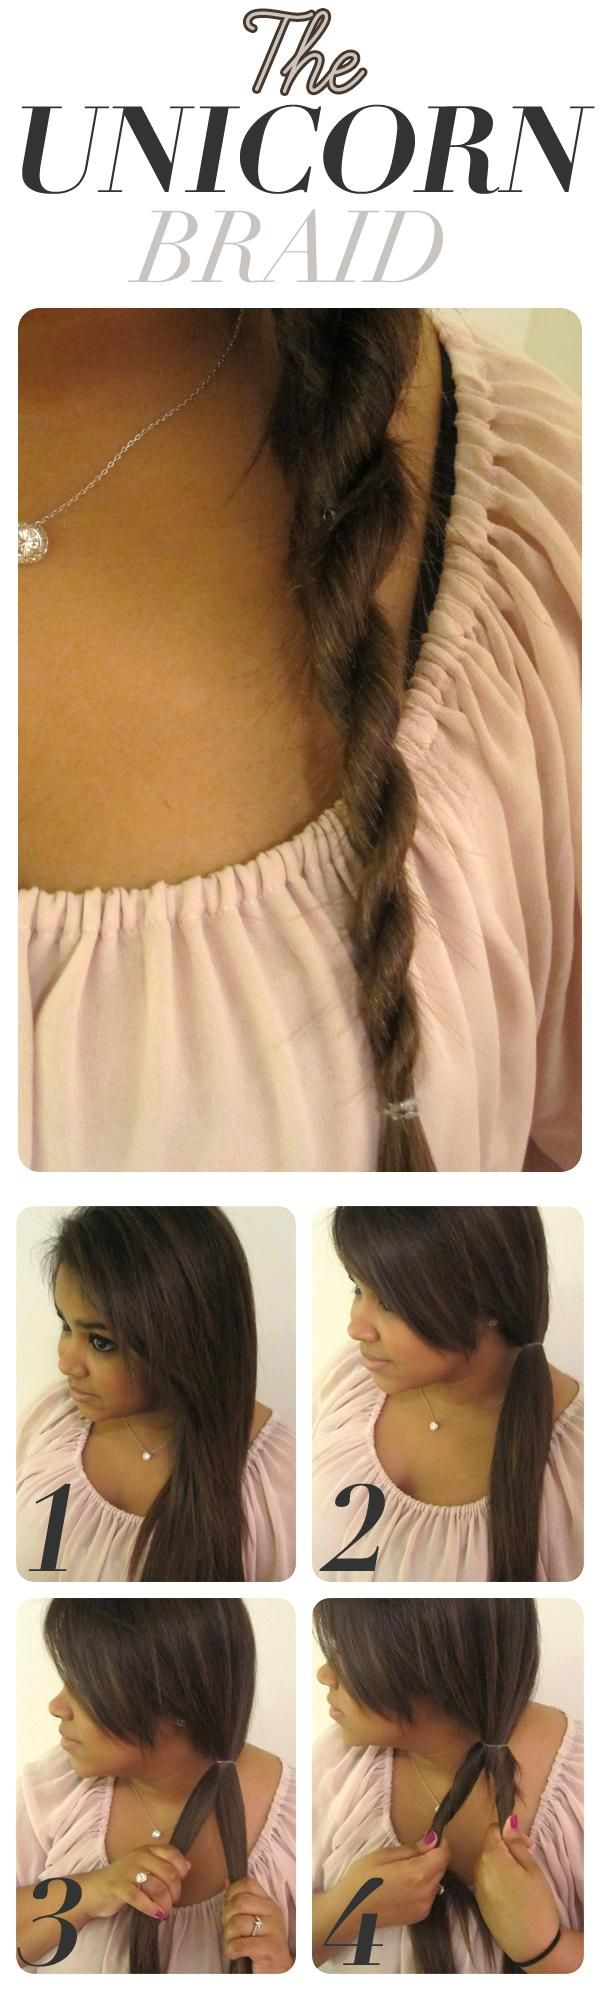 unicorn braid-i might be able to handle this one